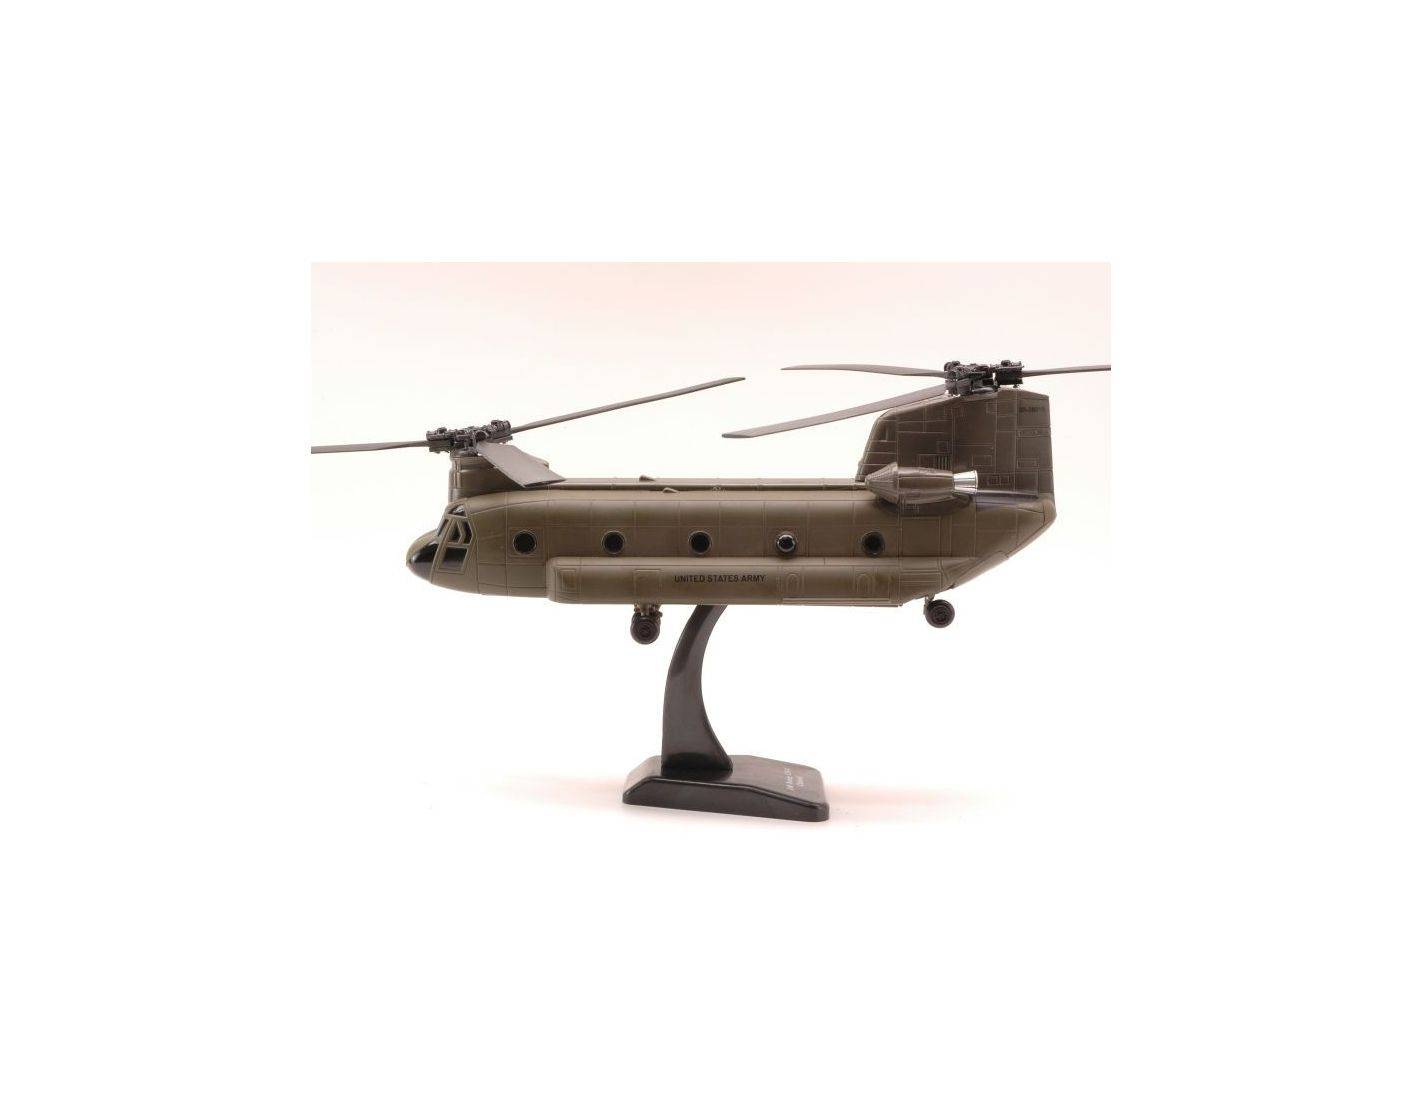 Elicottero Ch : New ray ny elicottero boeing ch chinook modellino